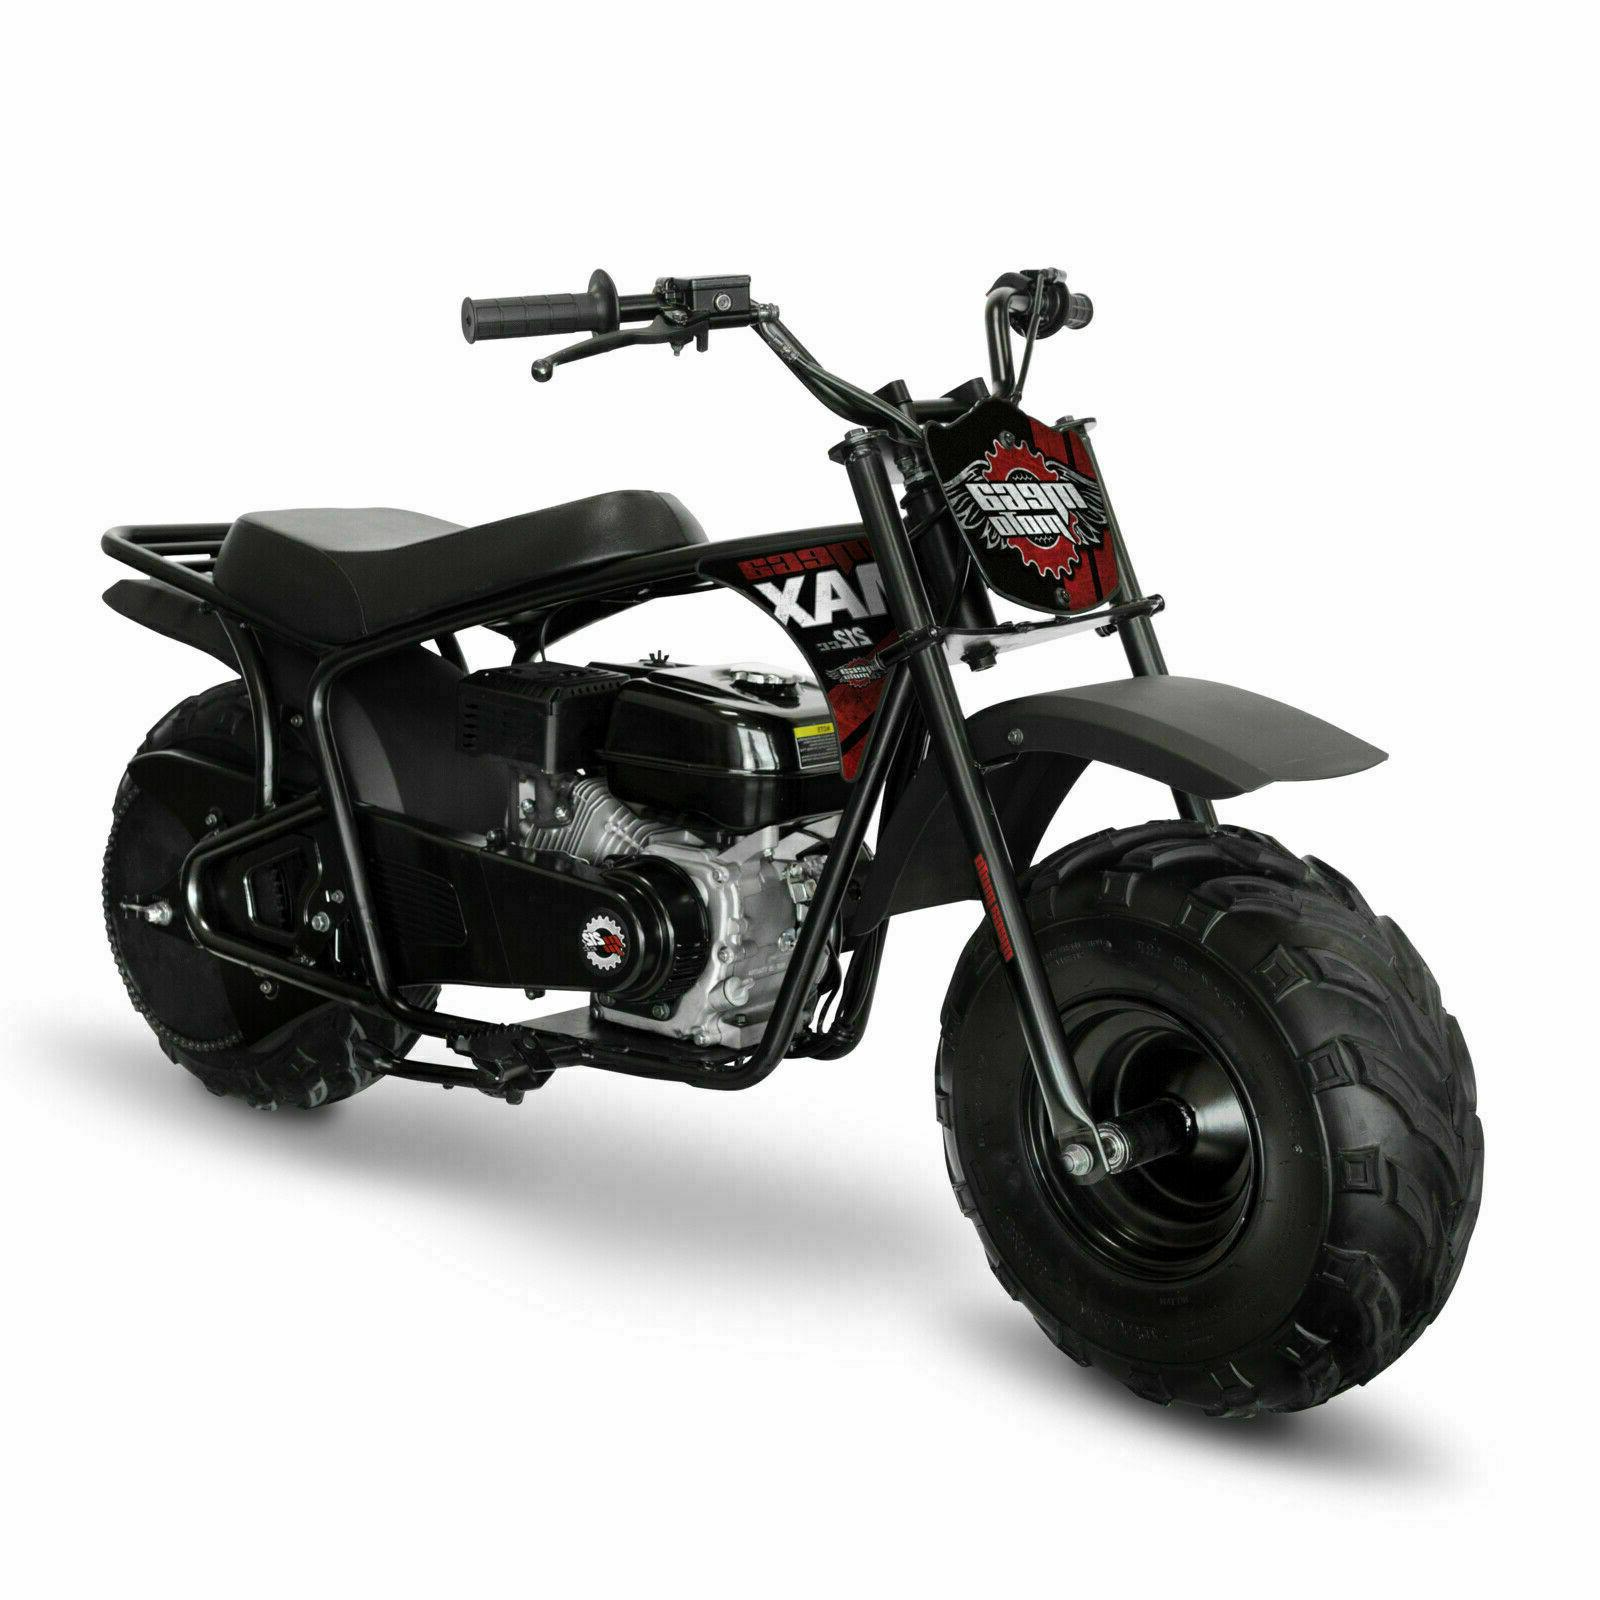 212cc mega max mini bike